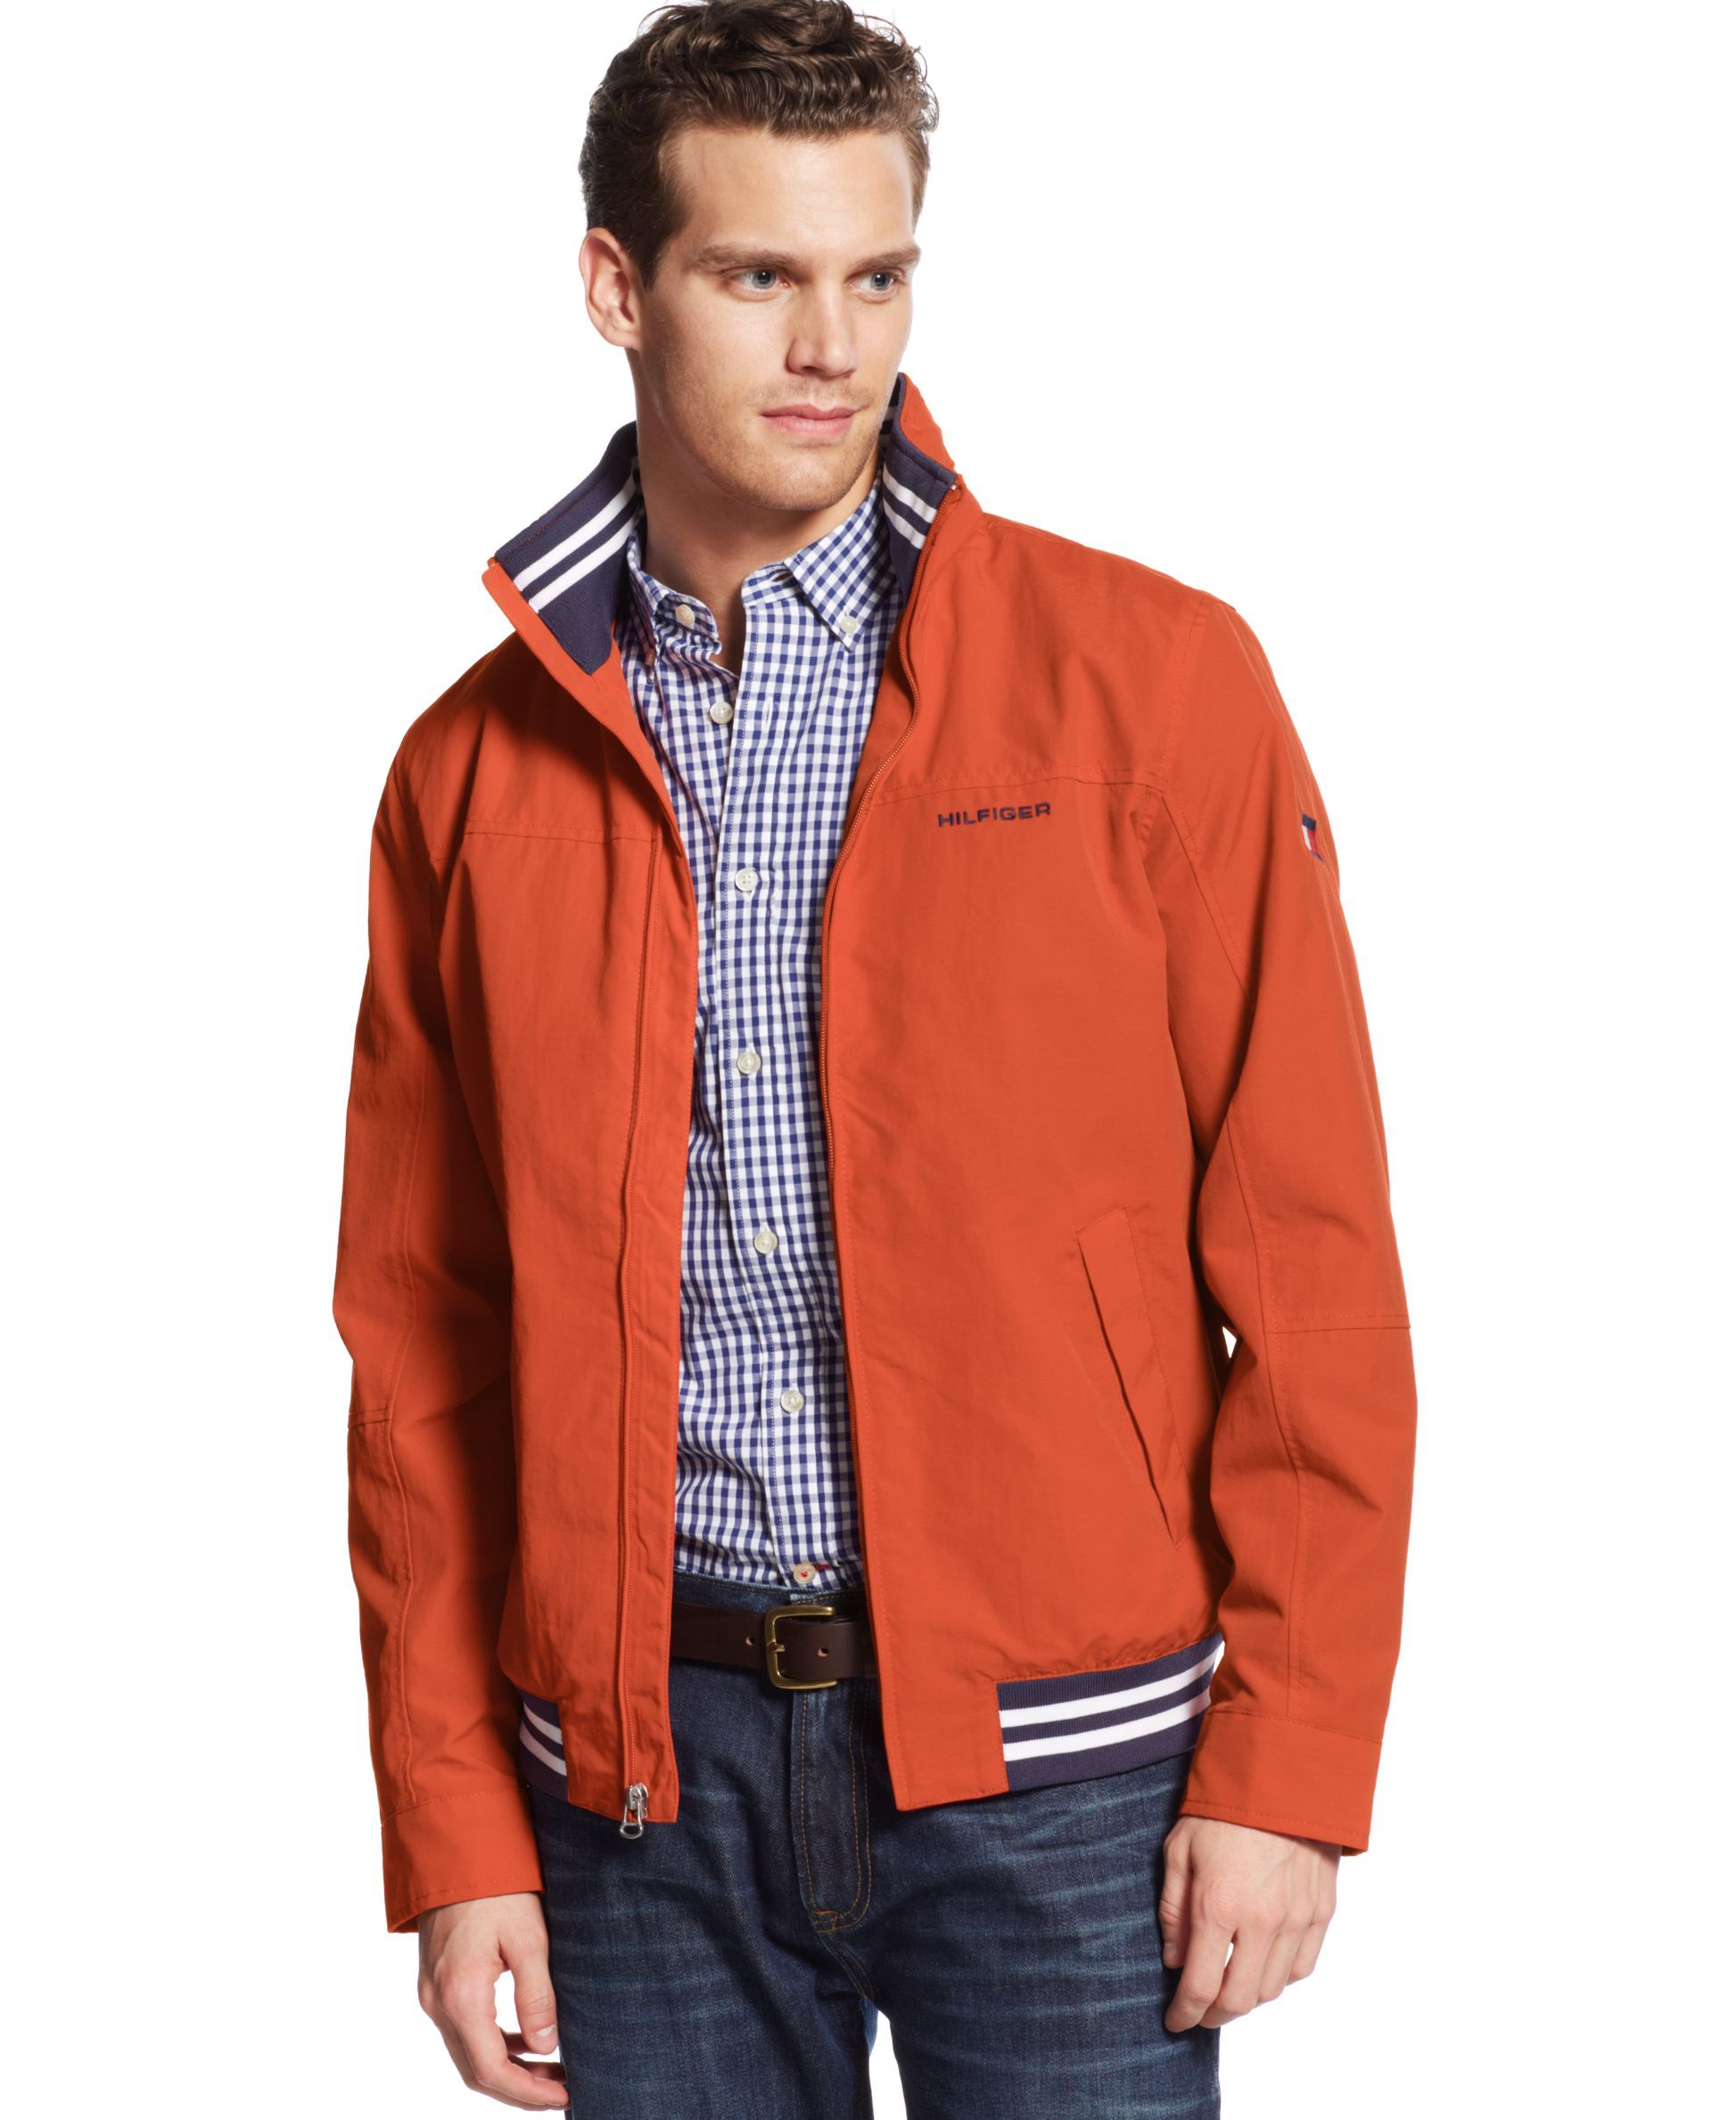 000421c50 Men's Regatta Jacket, Created for Macy's | Products | Tommy hilfiger ...